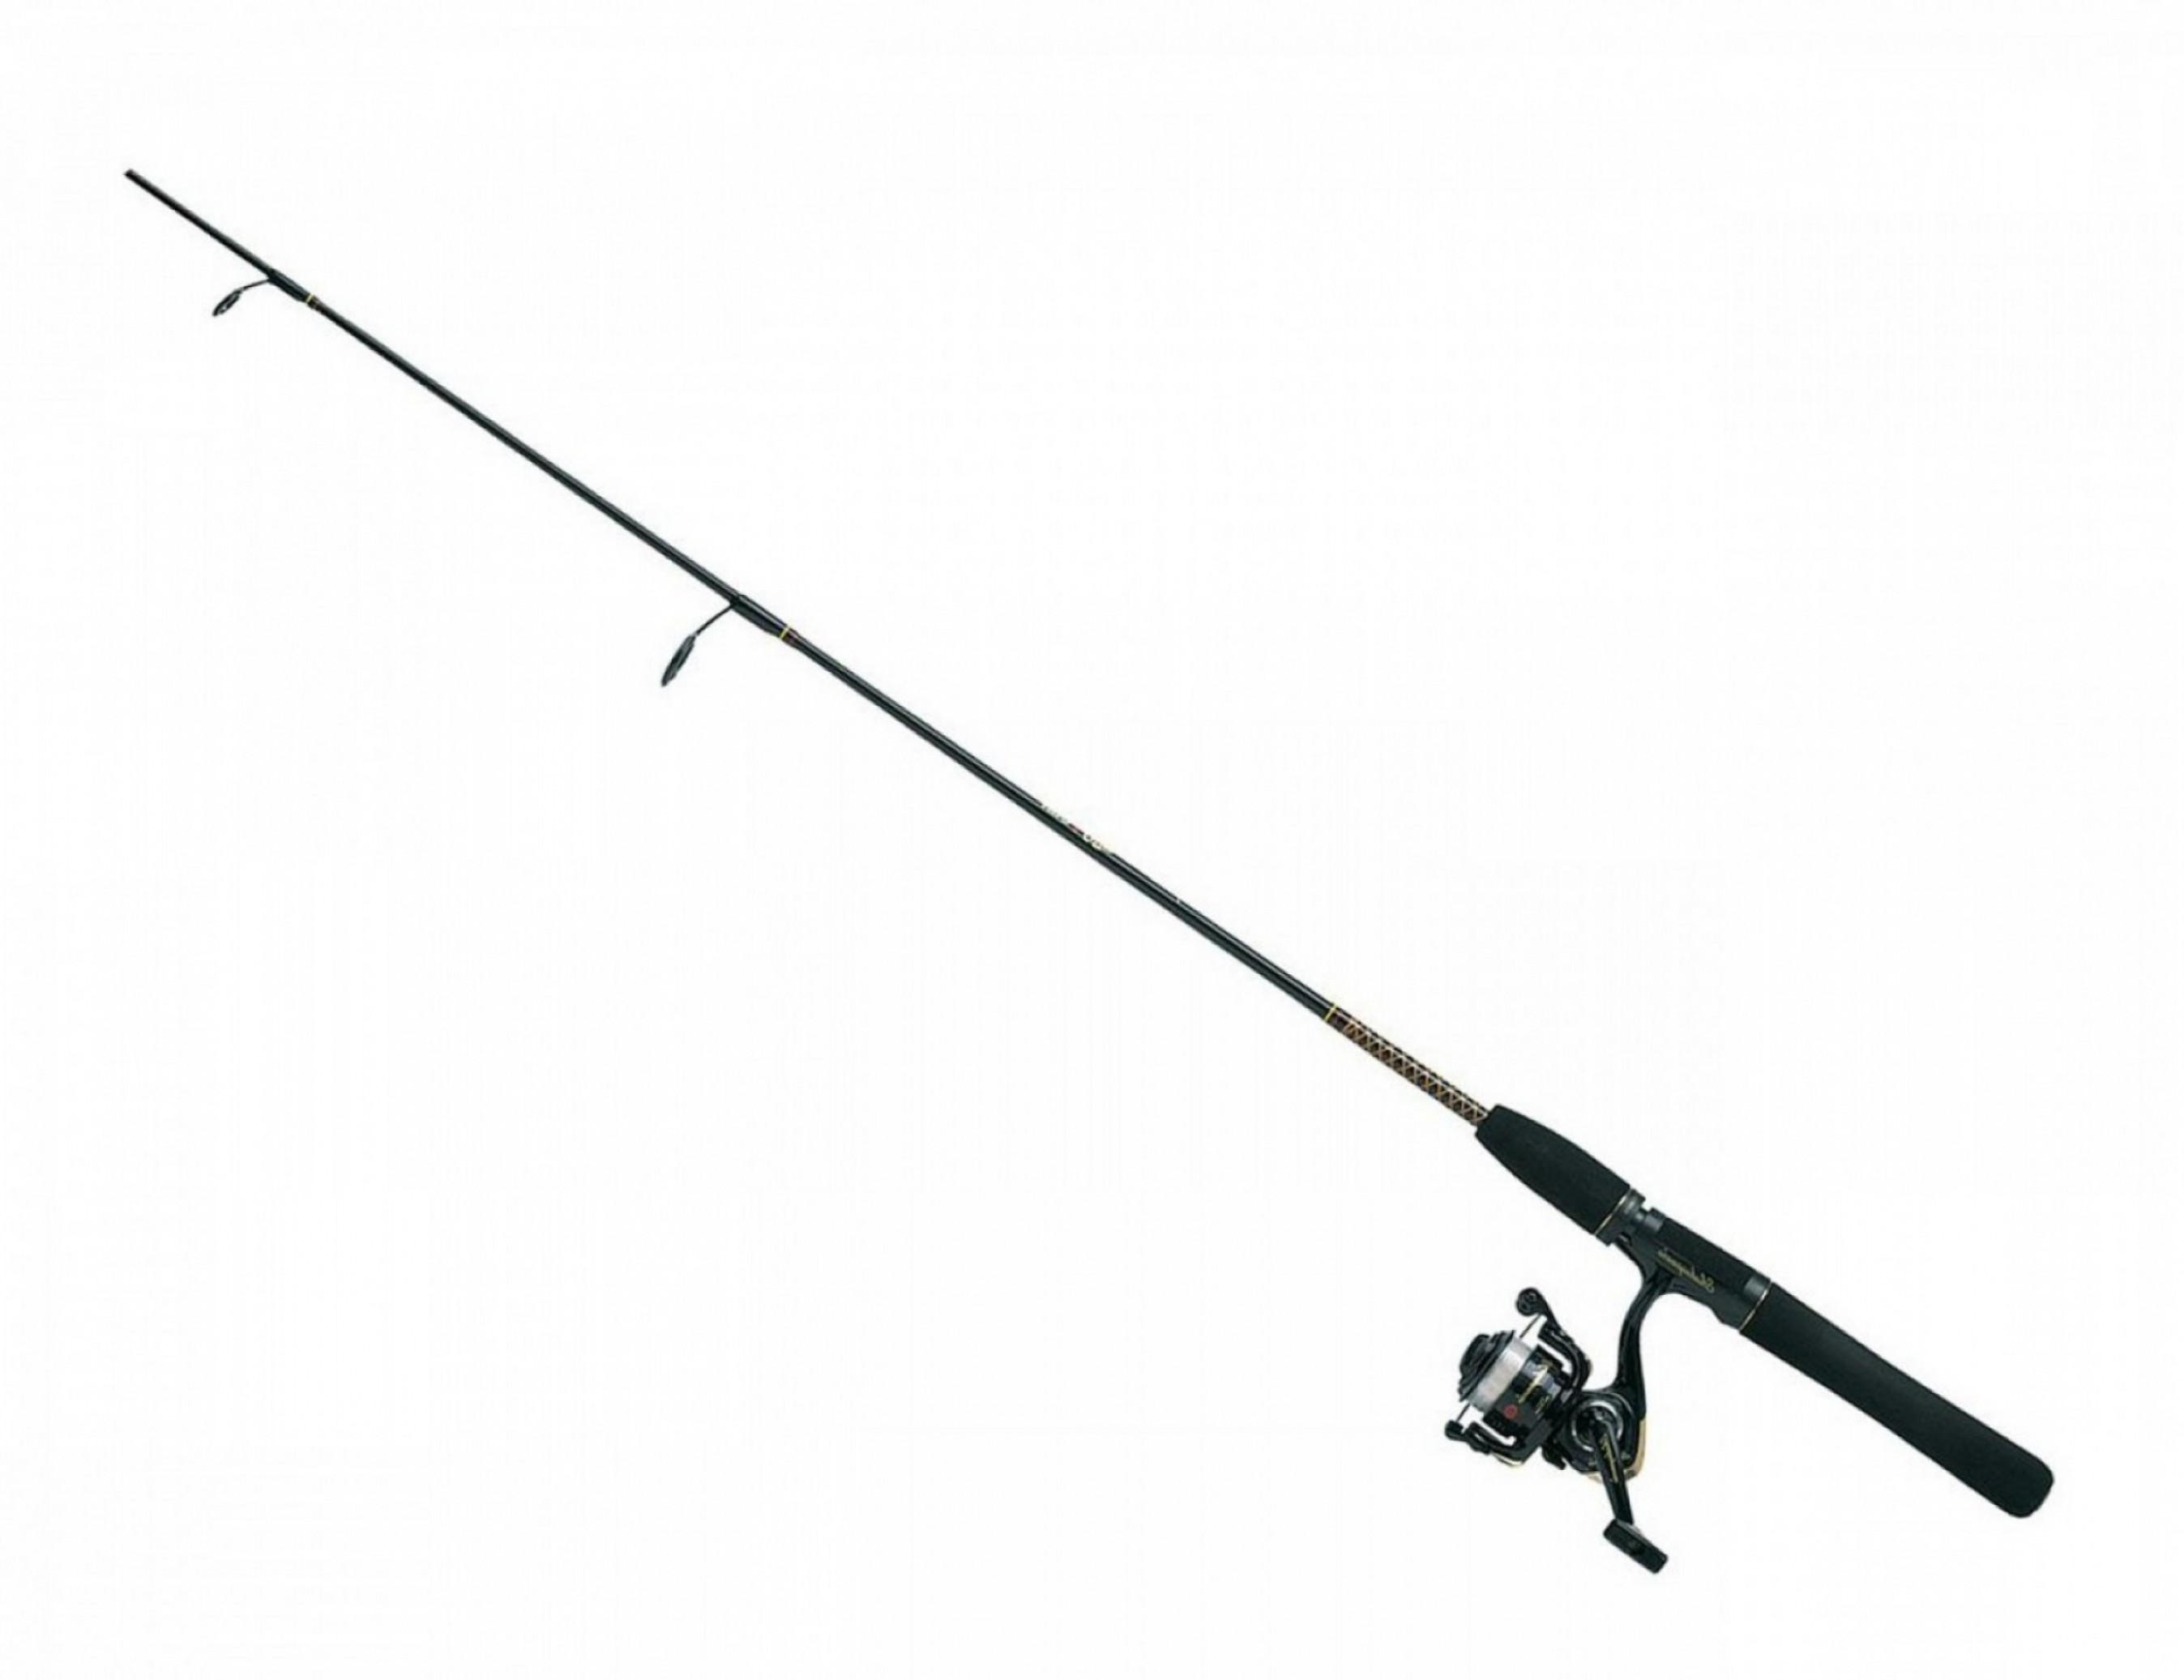 Fishing Pole Silhouette Vector: Best Fishing Pole Rod Clipart Kiaavto Image Images